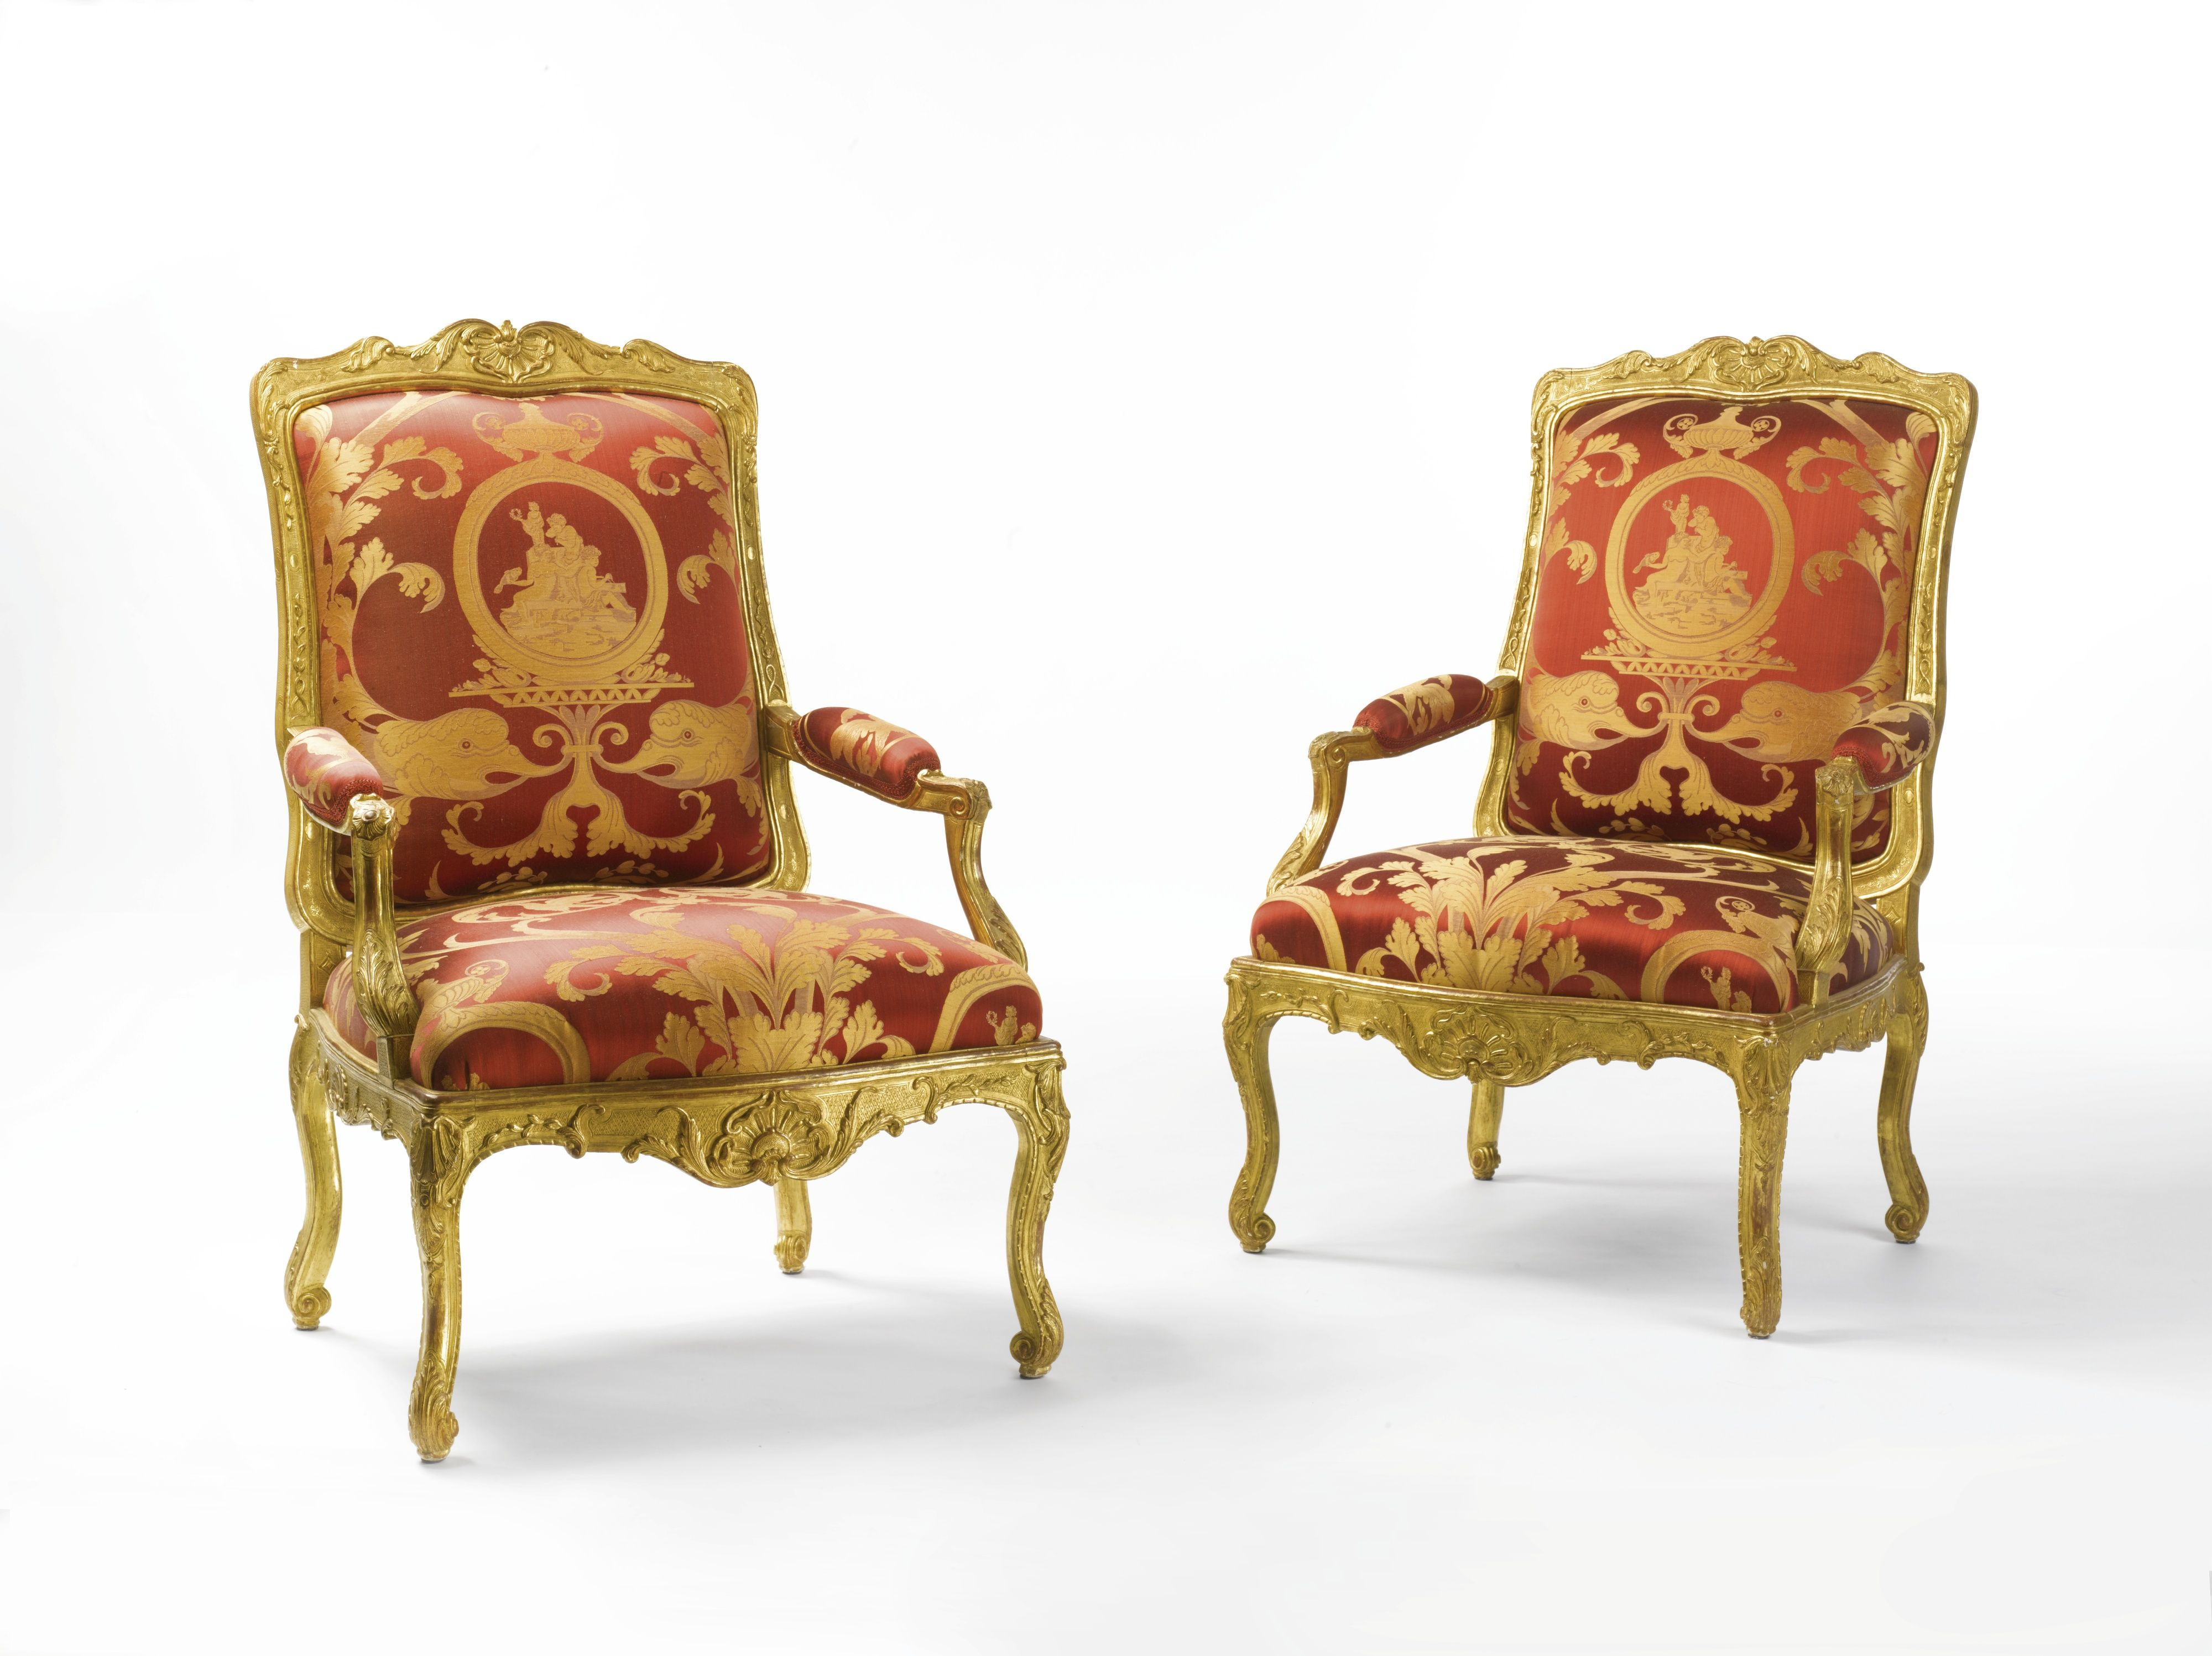 Styles Fauteuils A Pair Of Régence Carved Giltwood Fauteuils Circa 1720 French